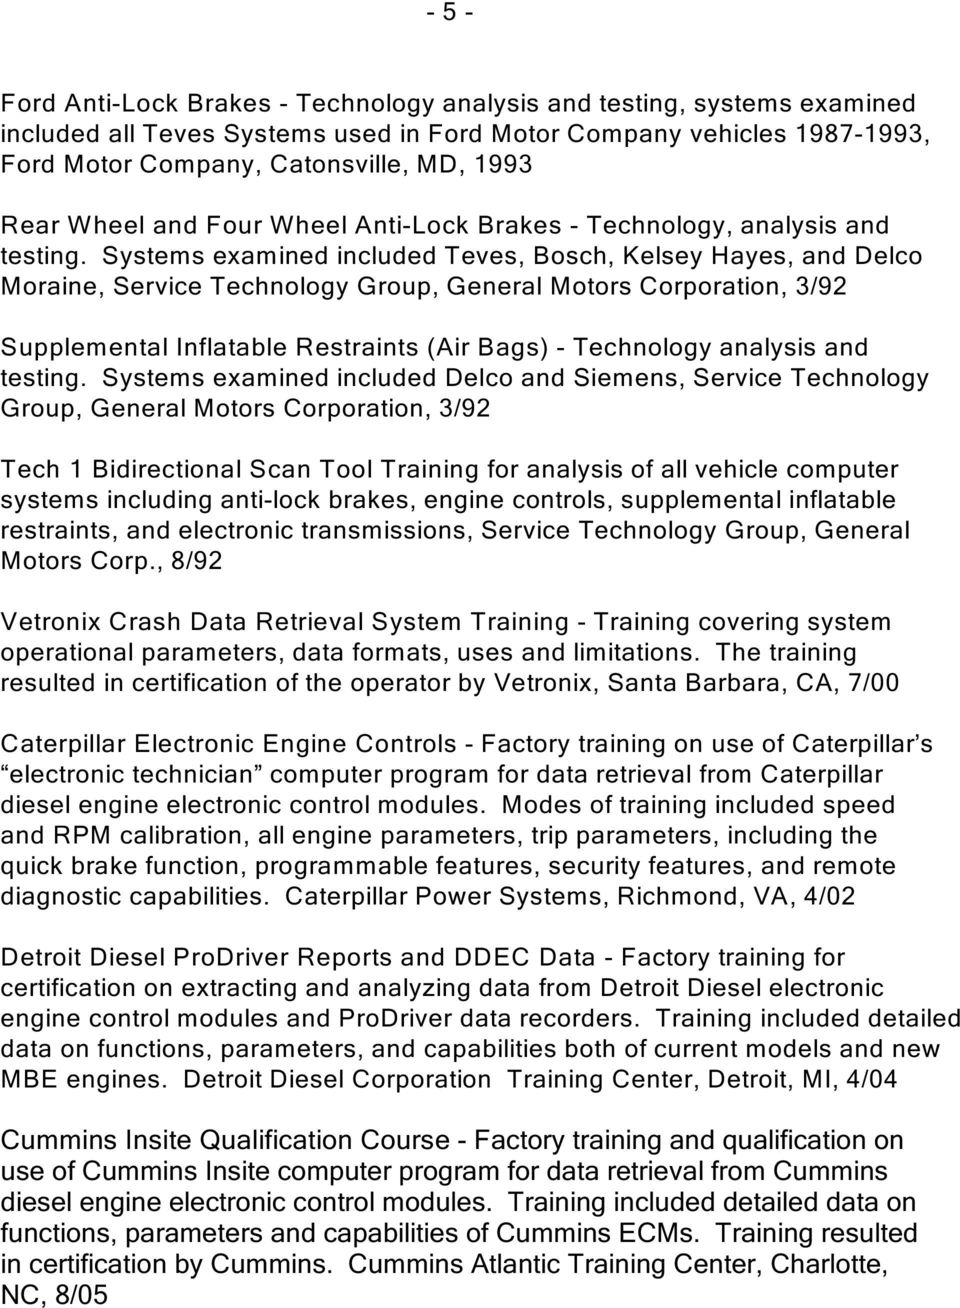 Systems examined included Teves, Bosch, Kelsey Hayes, and Delco Moraine, Service Technology Group, General Motors Corporation, 3/92 Supplemental Inflatable Restraints (Air Bags) - Technology analysis